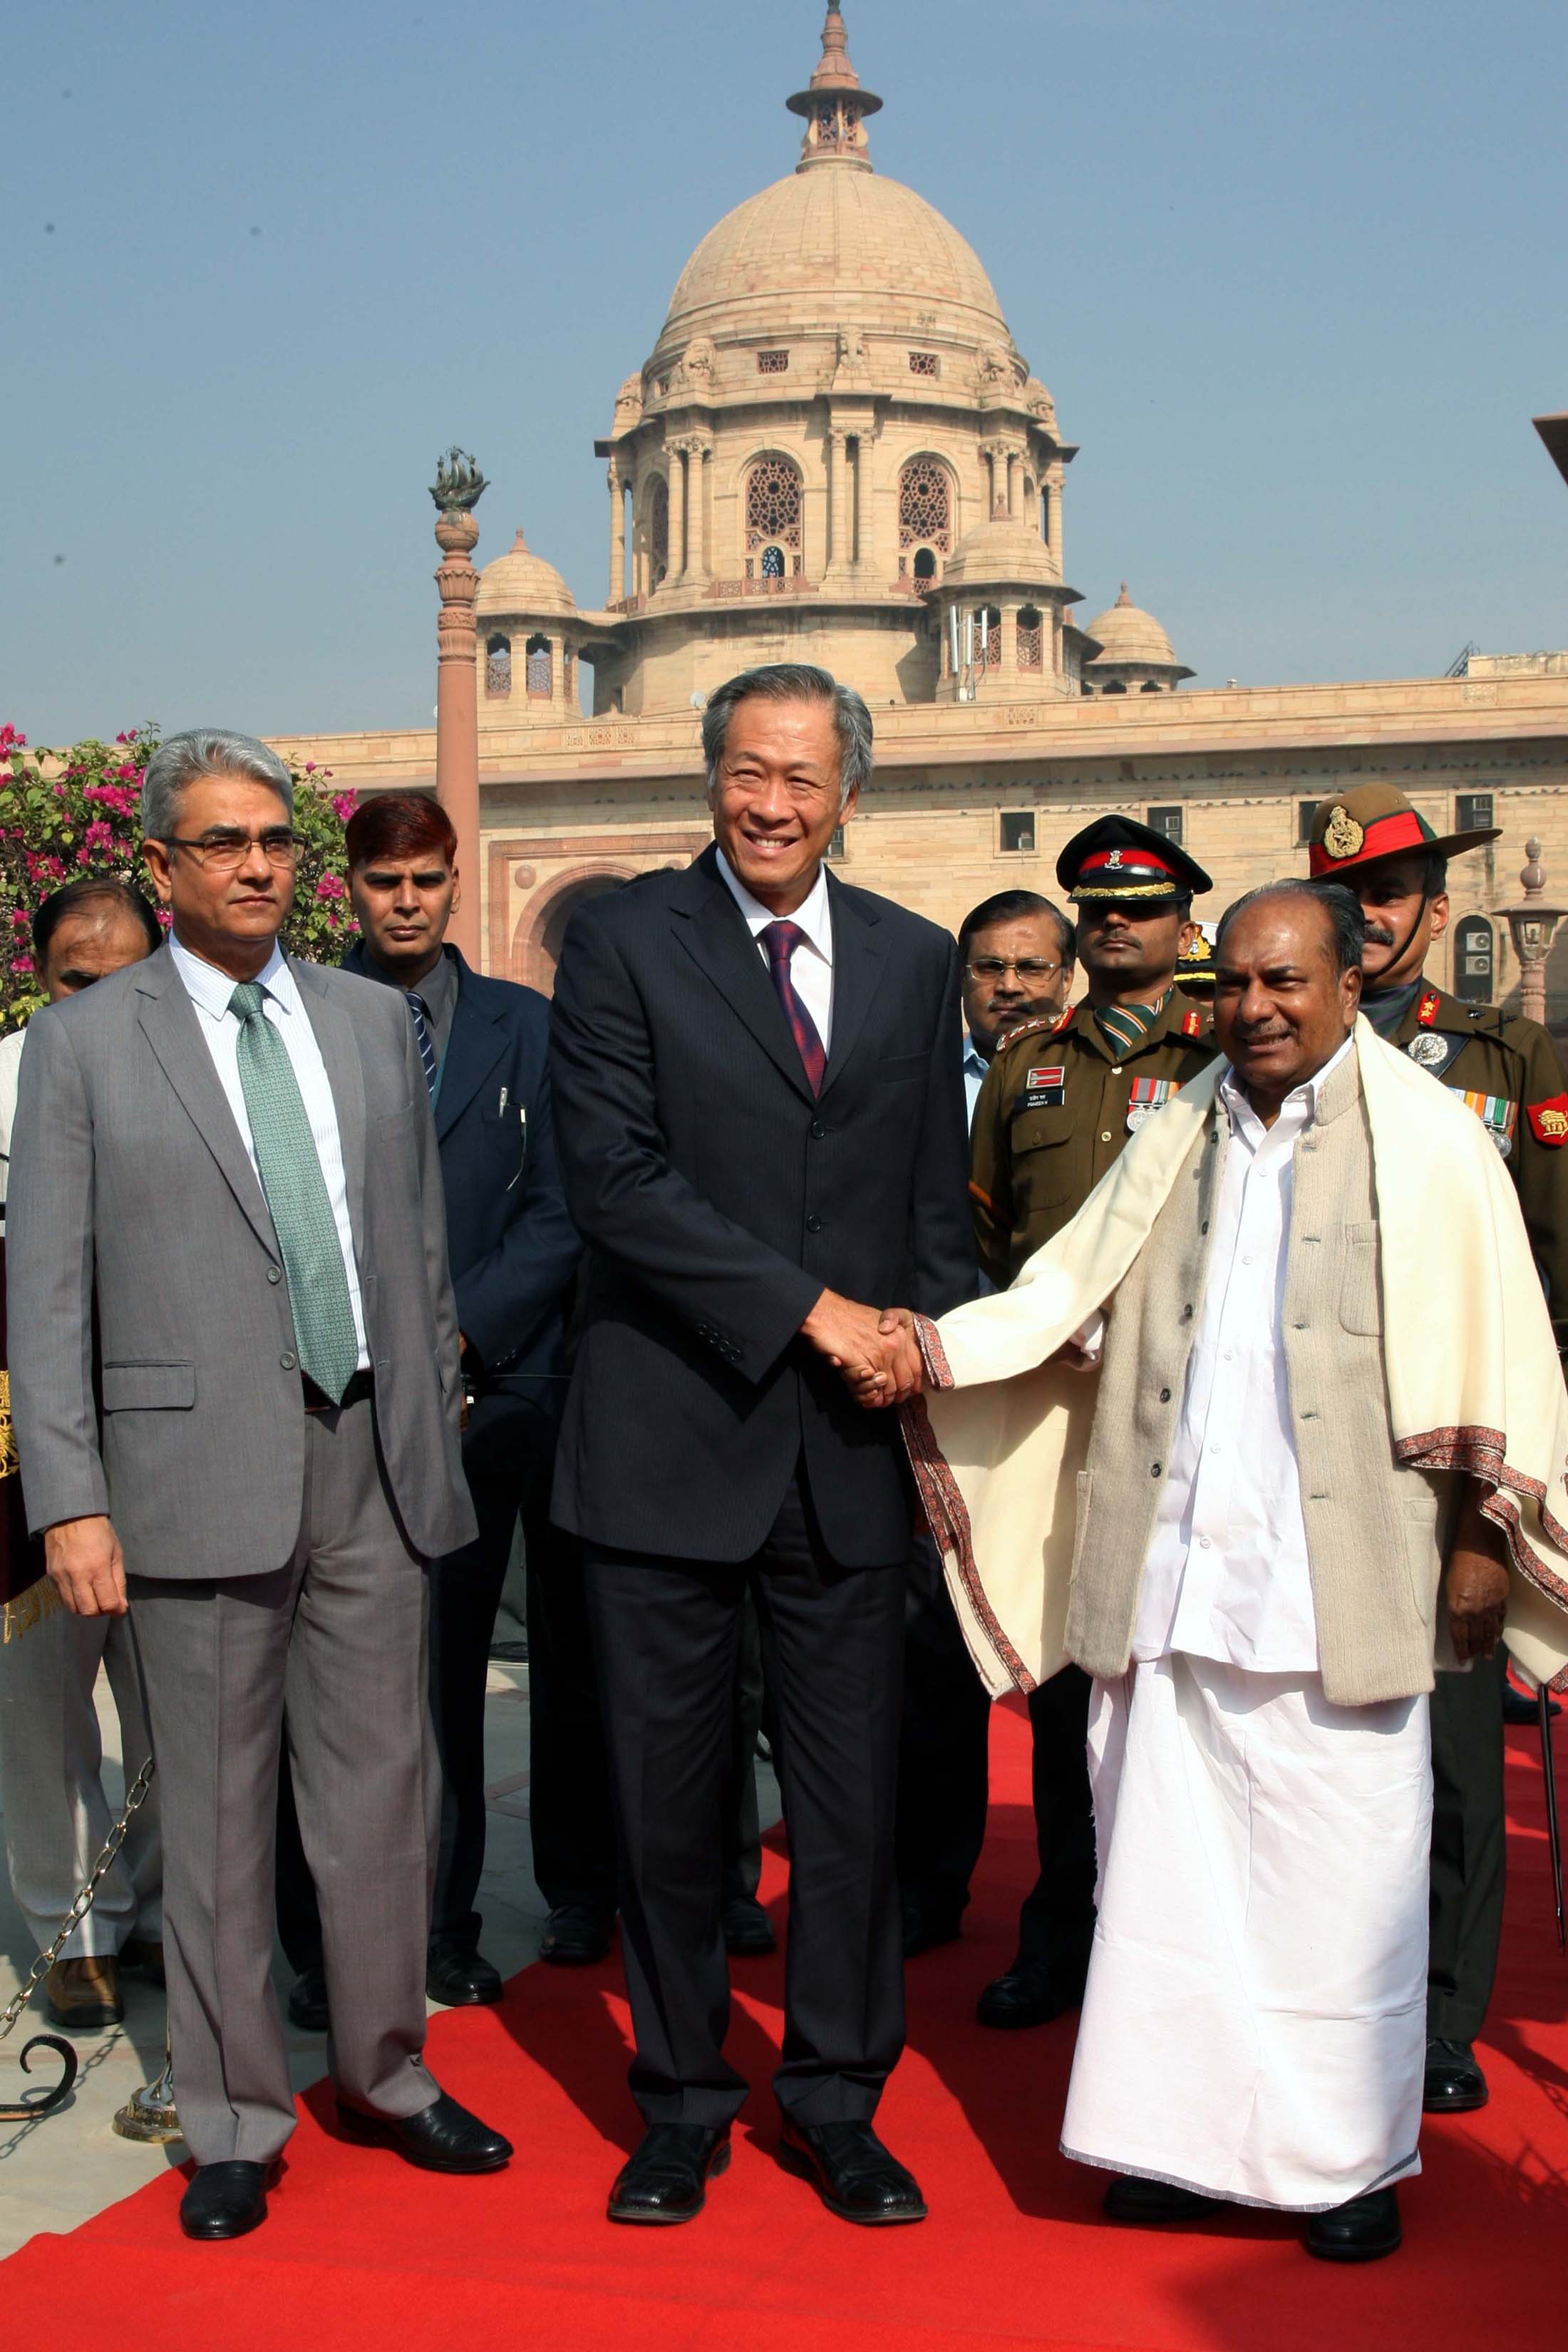 The Defence Minister of Singapore, Dr. NG Eng Hen, being welcomed by the Defence Minister, A. K. Antony, in New Delhi on November 21, 2012.